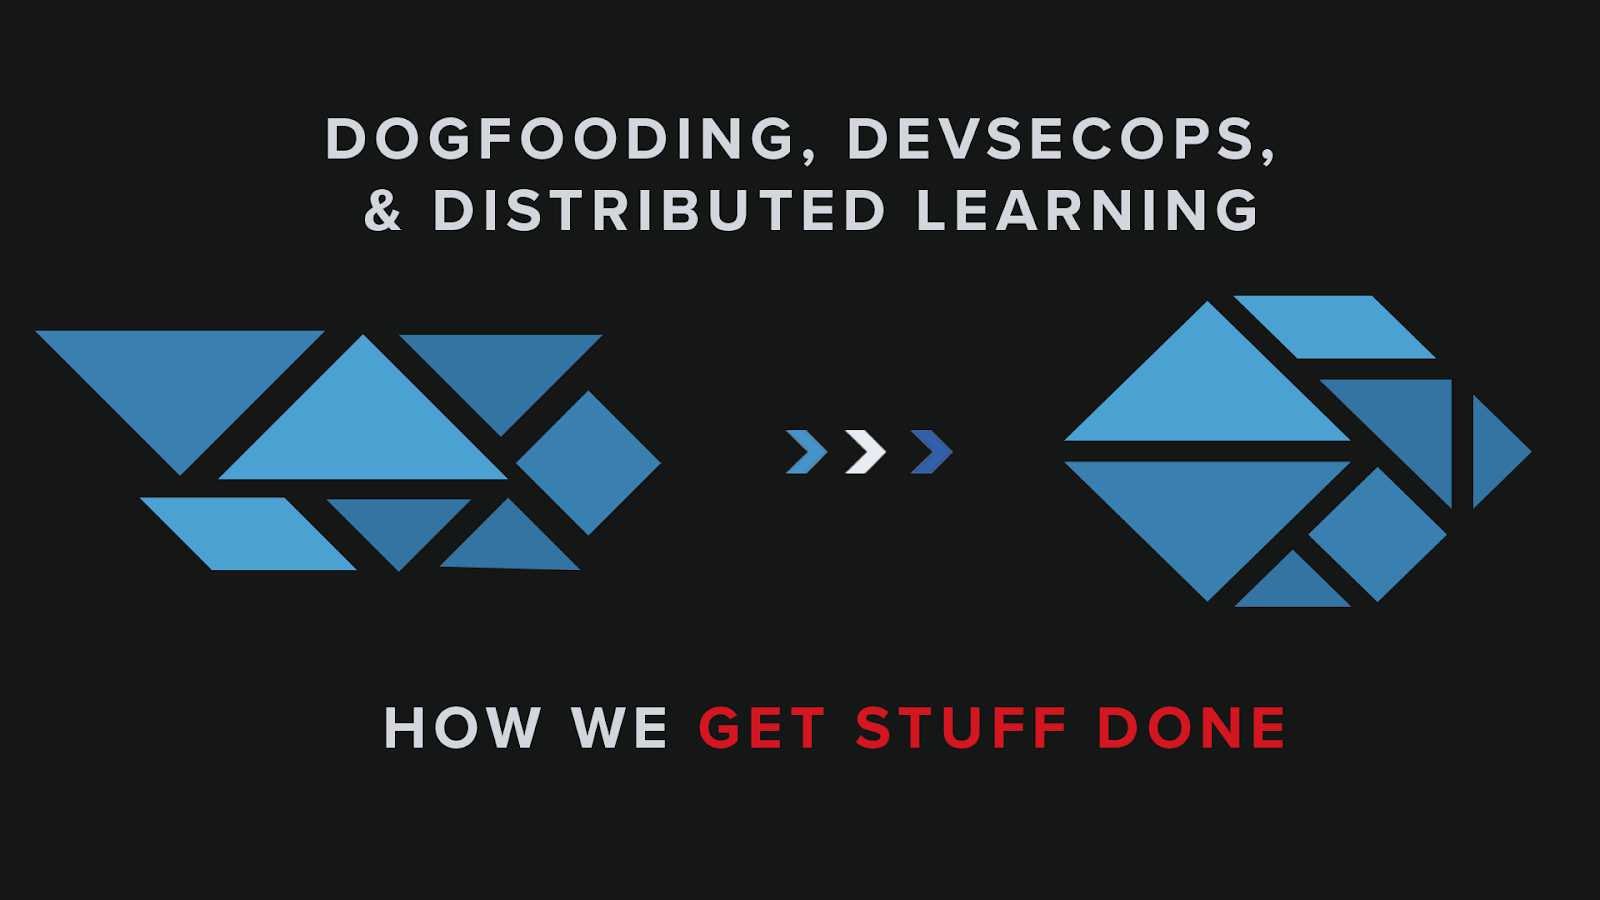 Dogfooding, DevSecOps, and Distributed Learning—How We Get Stuff Done